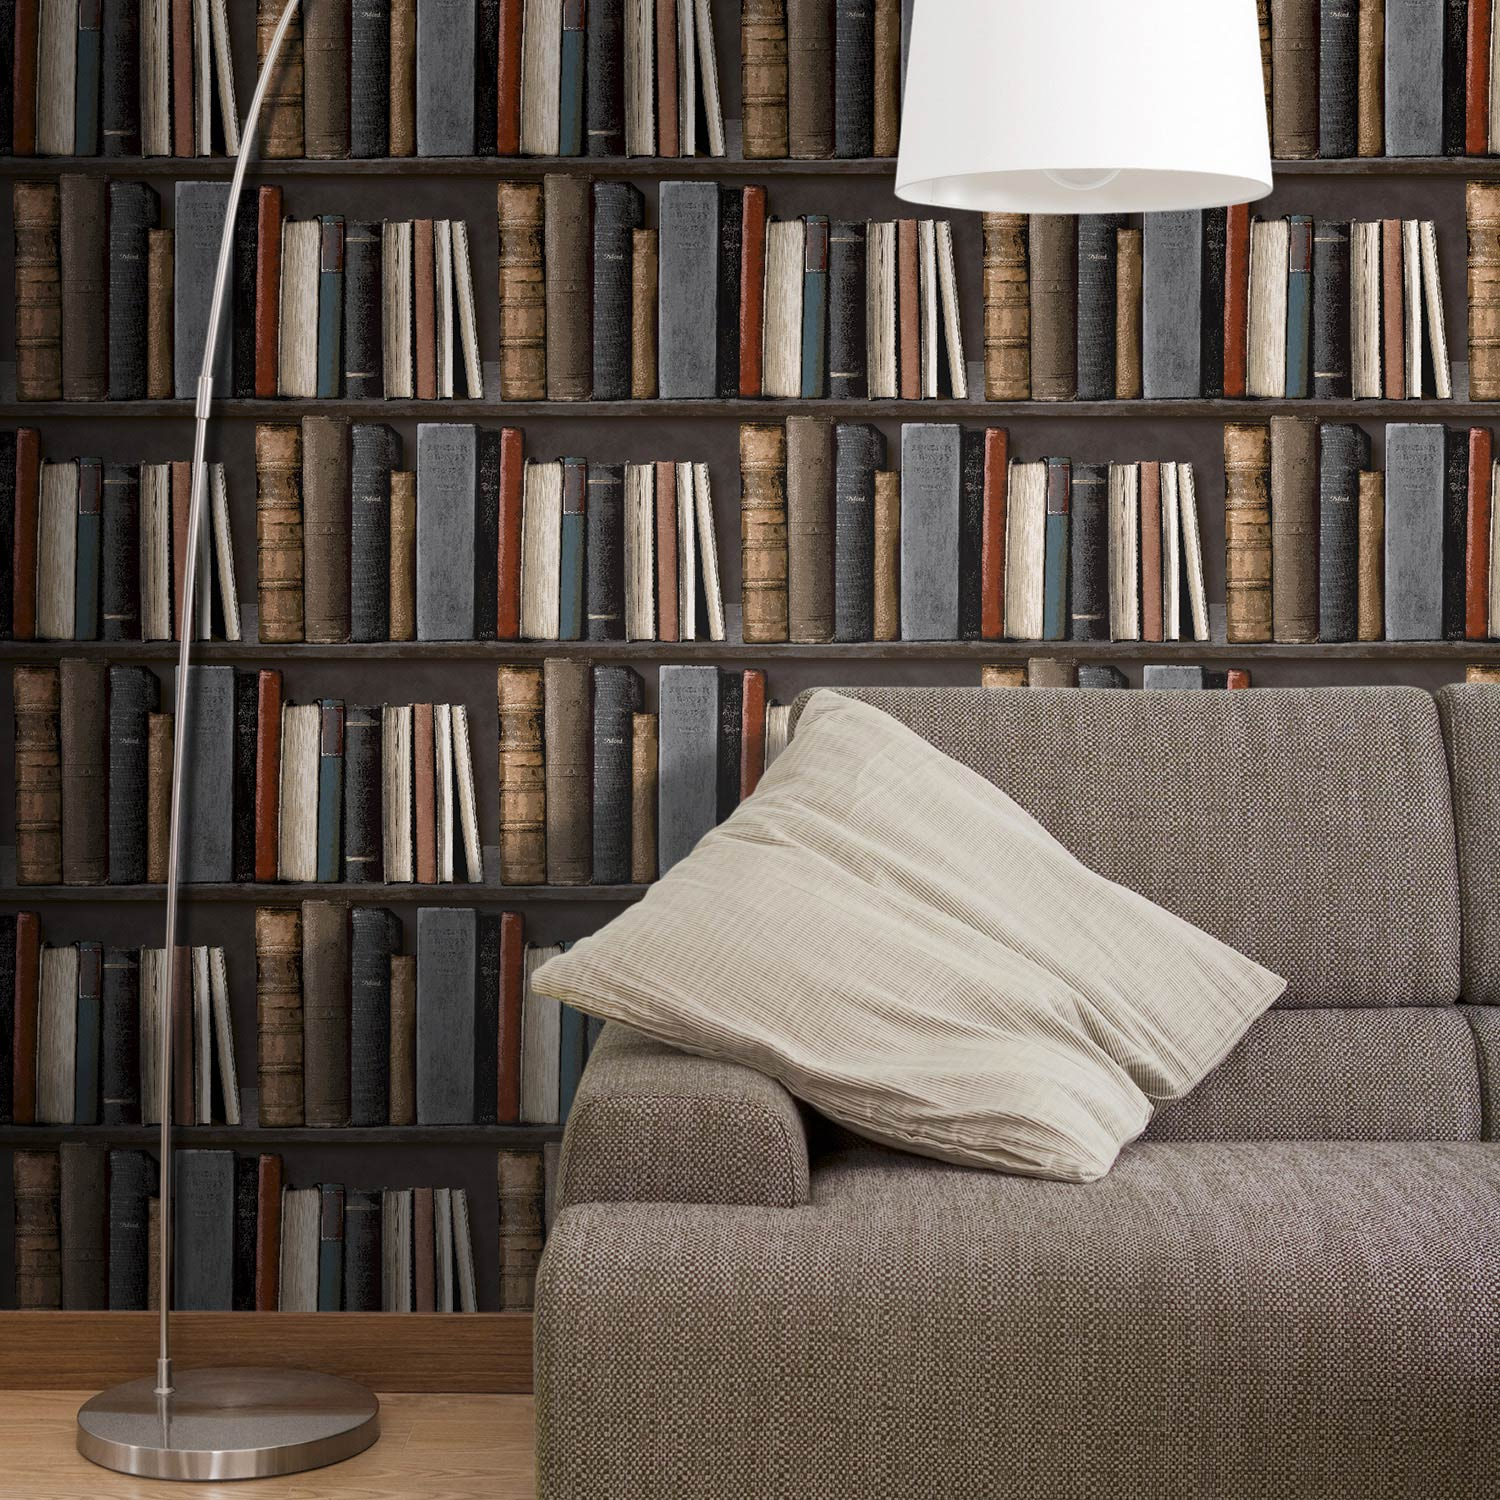 papier peint intiss bibliotek multicouleur leroy merlin. Black Bedroom Furniture Sets. Home Design Ideas